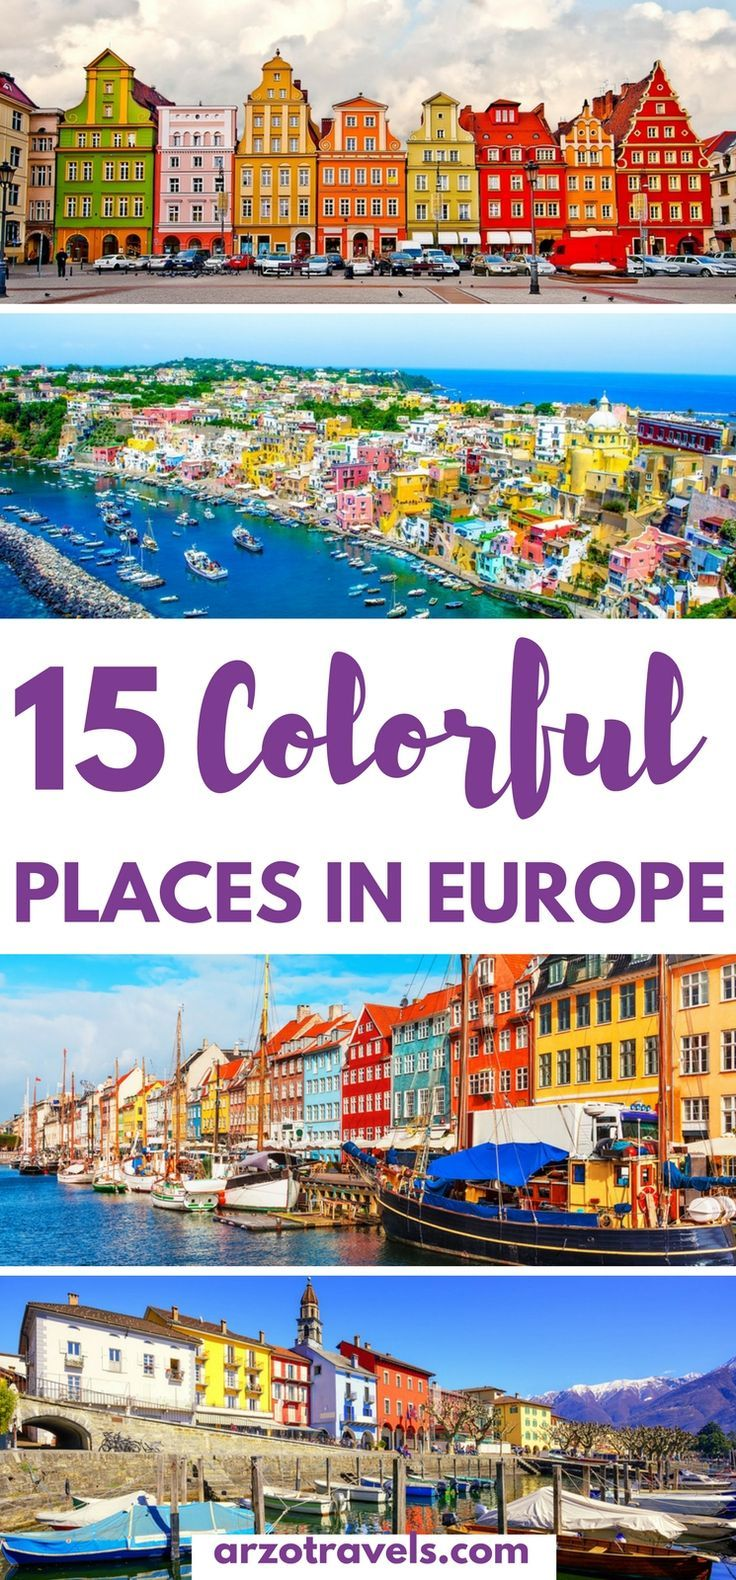 Europe is full of amazing colorful towns and cities, and here are the 15 best vivid places to visit in Europe.: